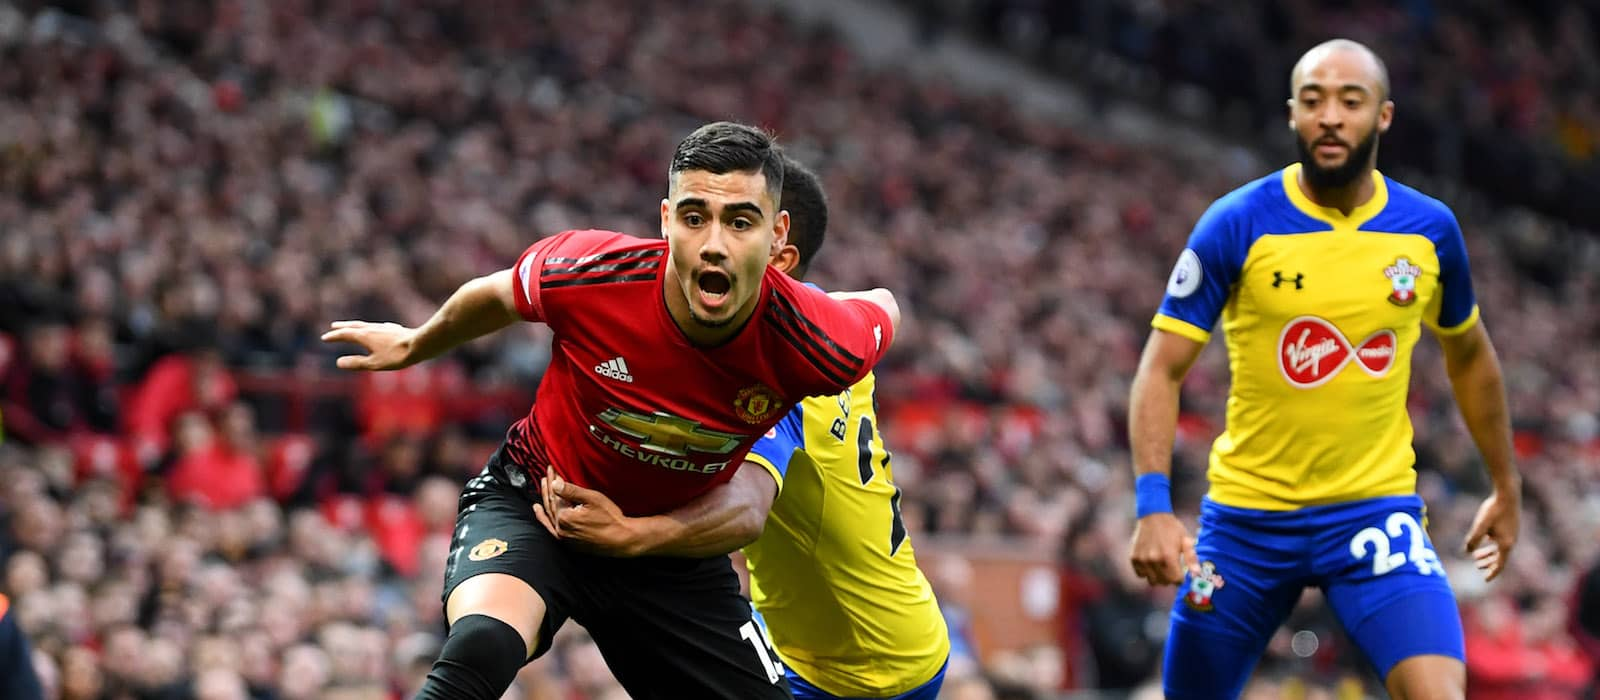 Andreas Pereira produces superb second half display against Southampton